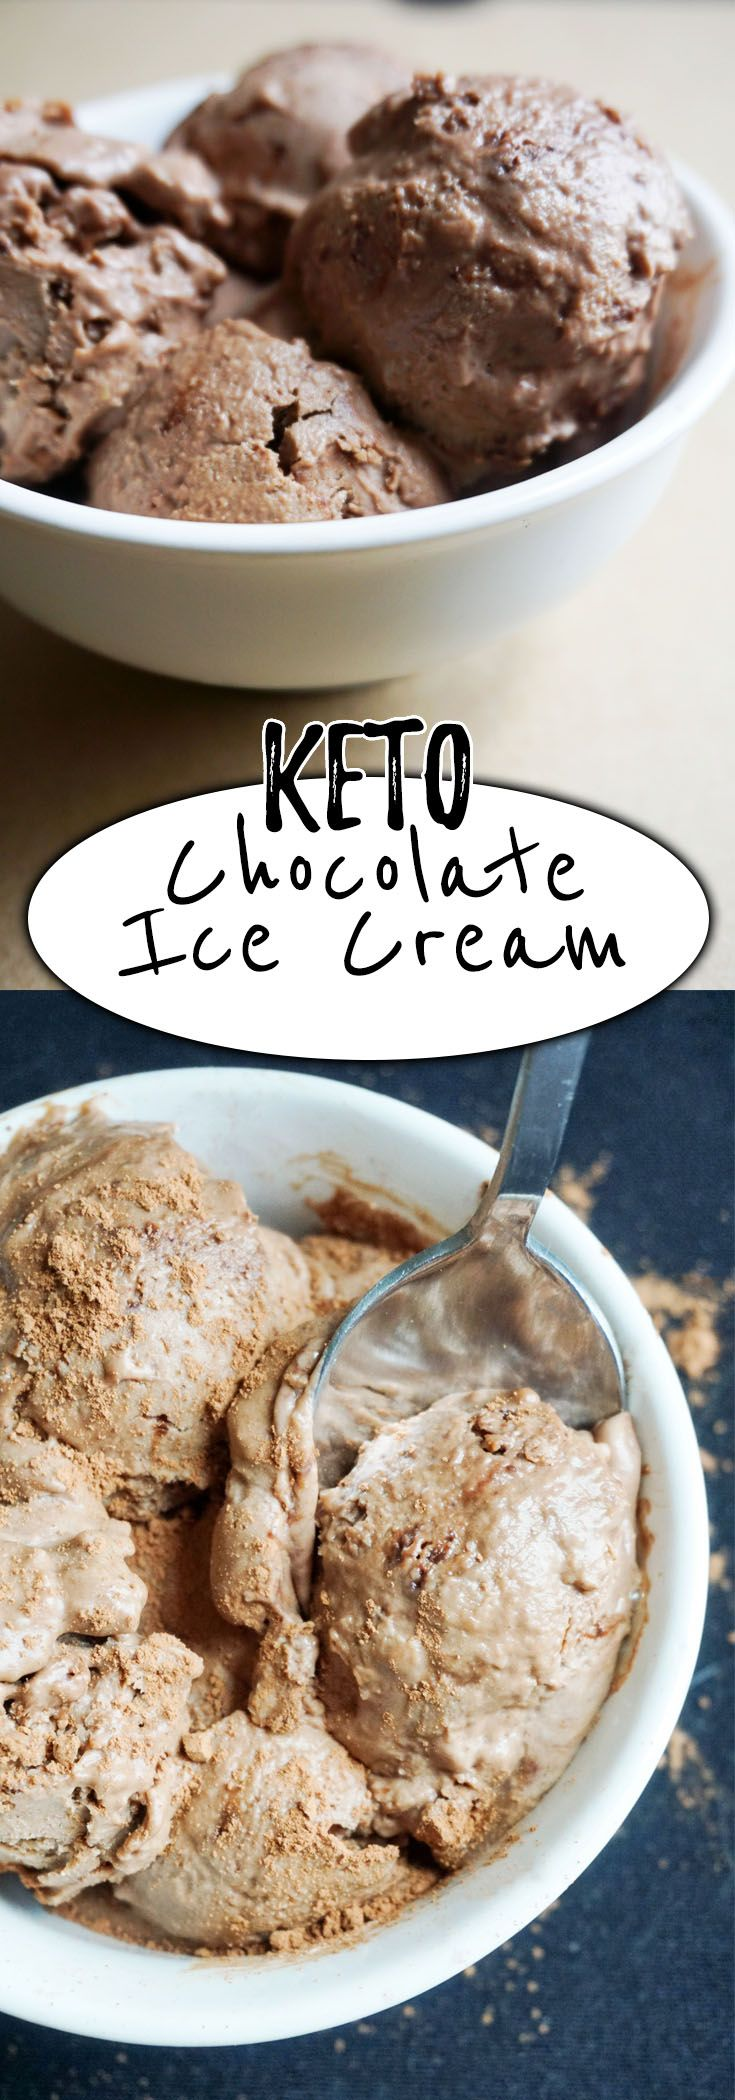 Low Carb Ice Cream #ketoicecream